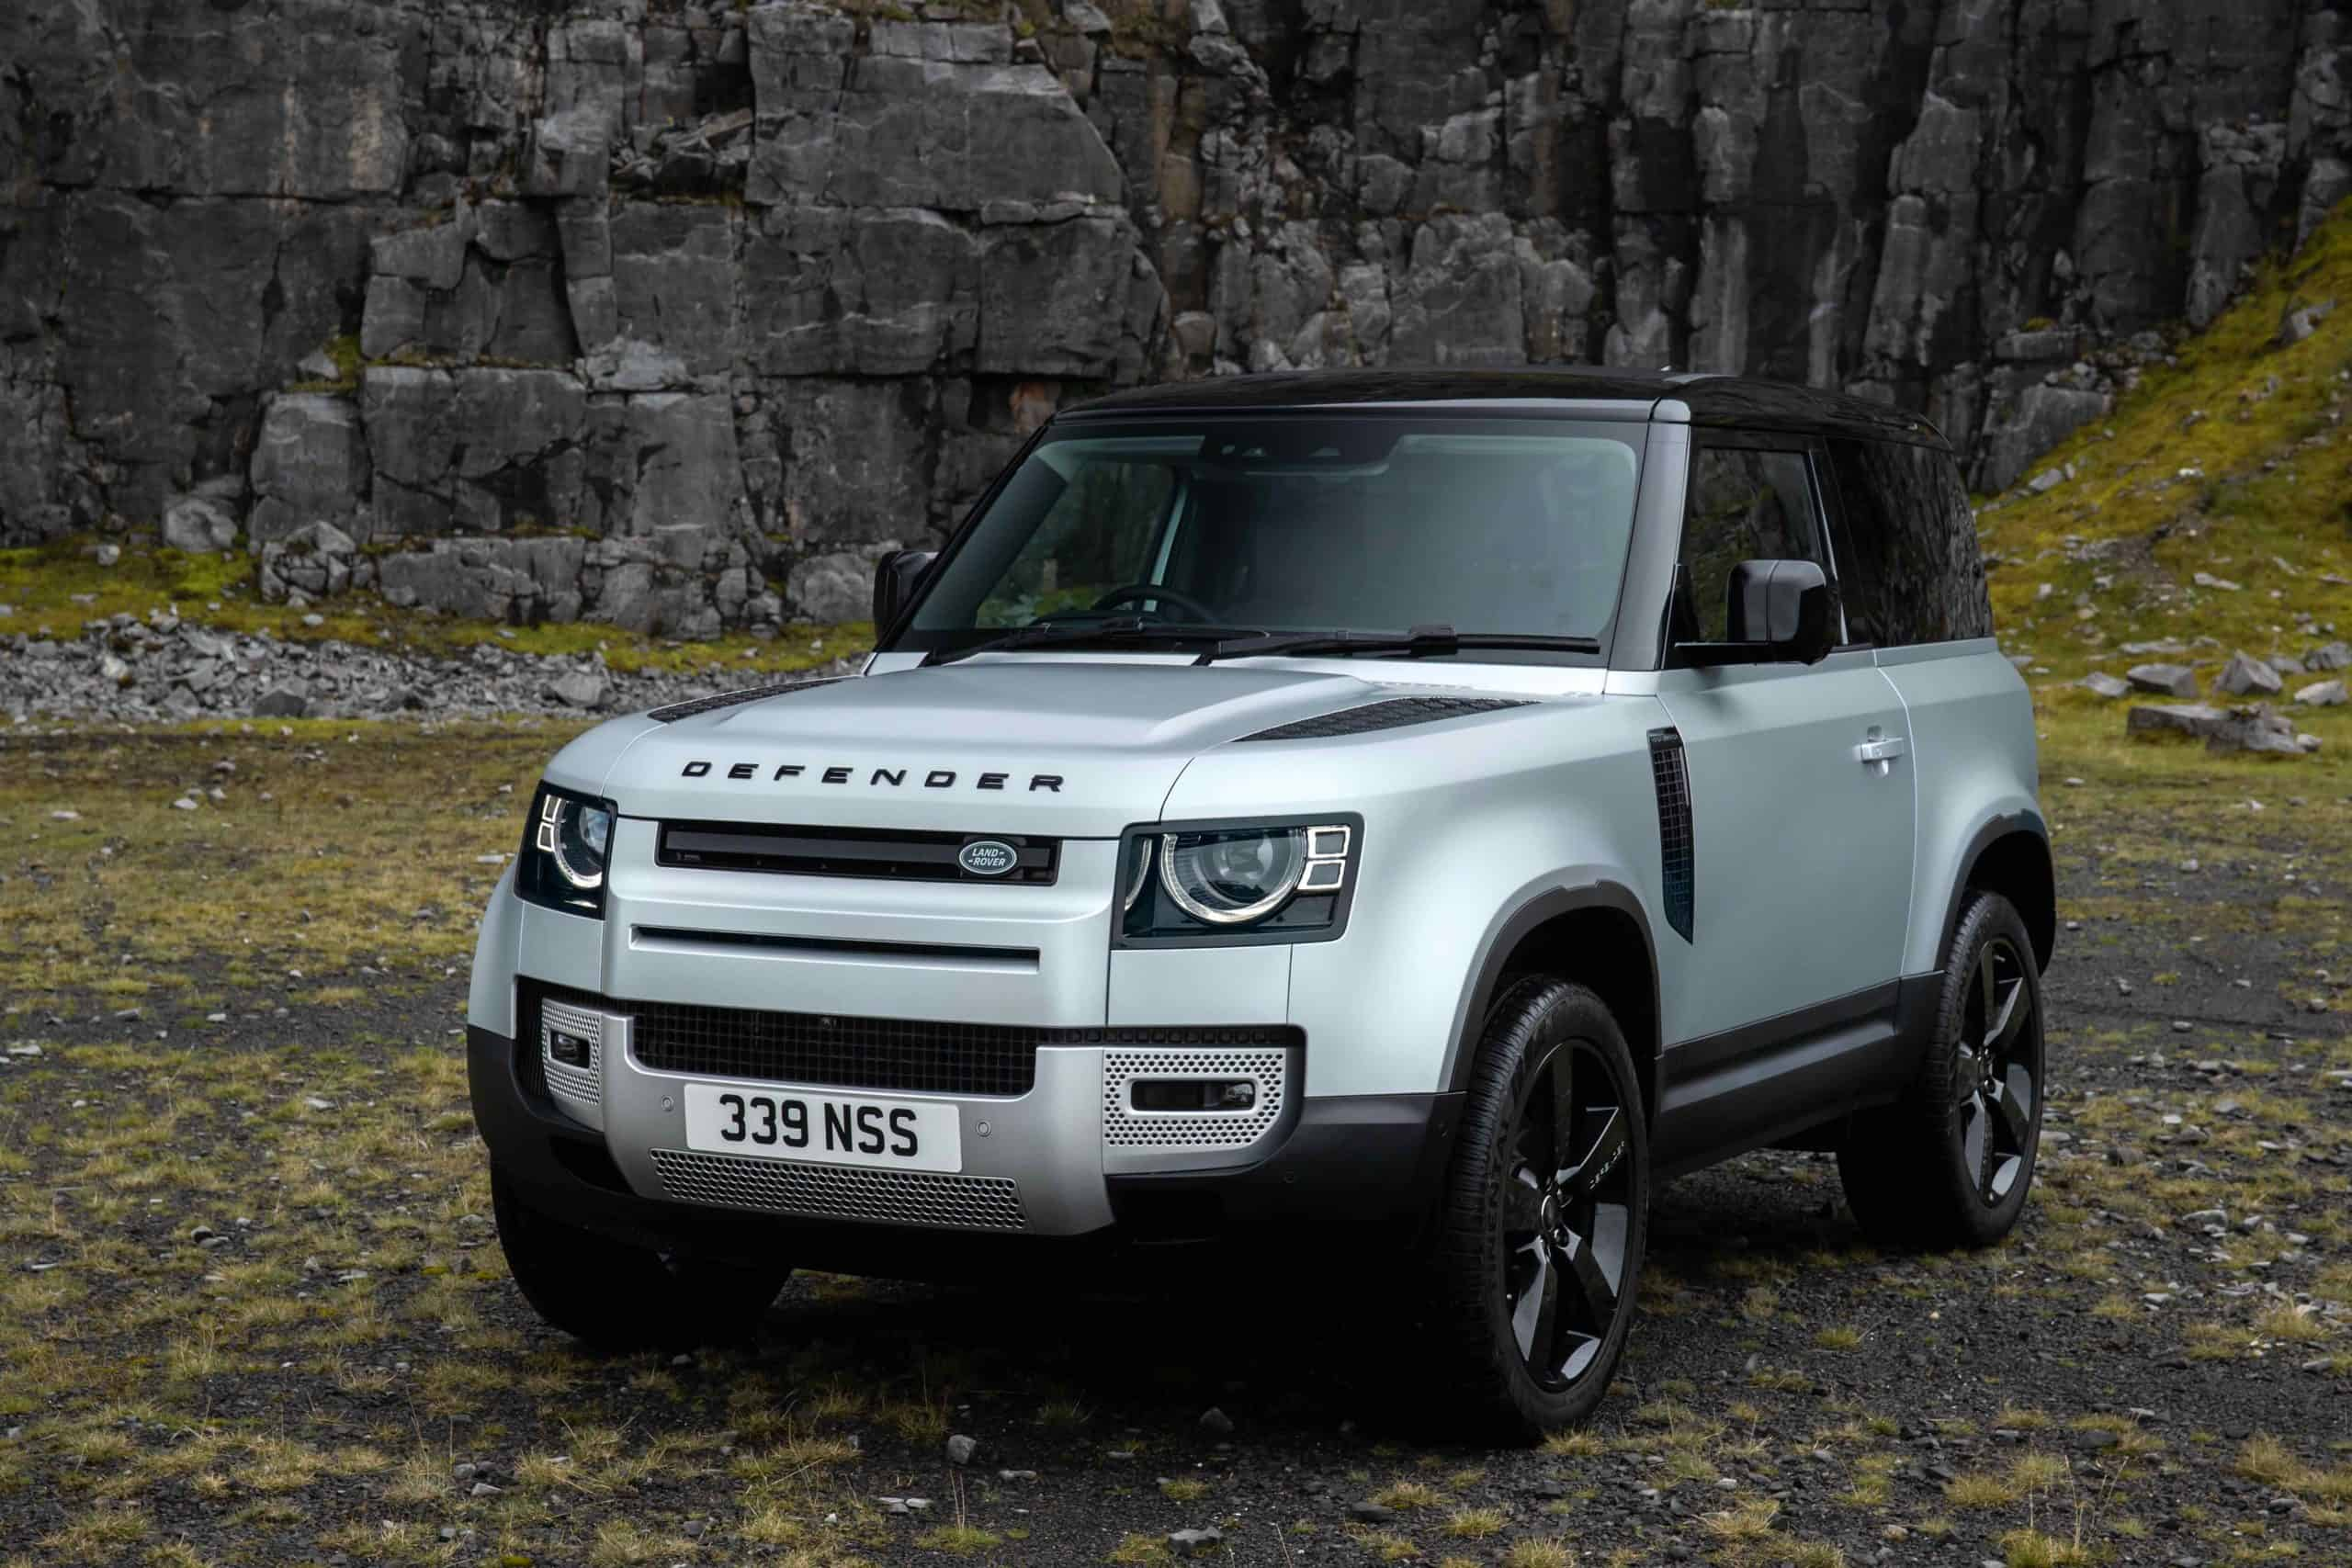 2021 Land Rover Defender 90 Pricing And Pictures | Autowise